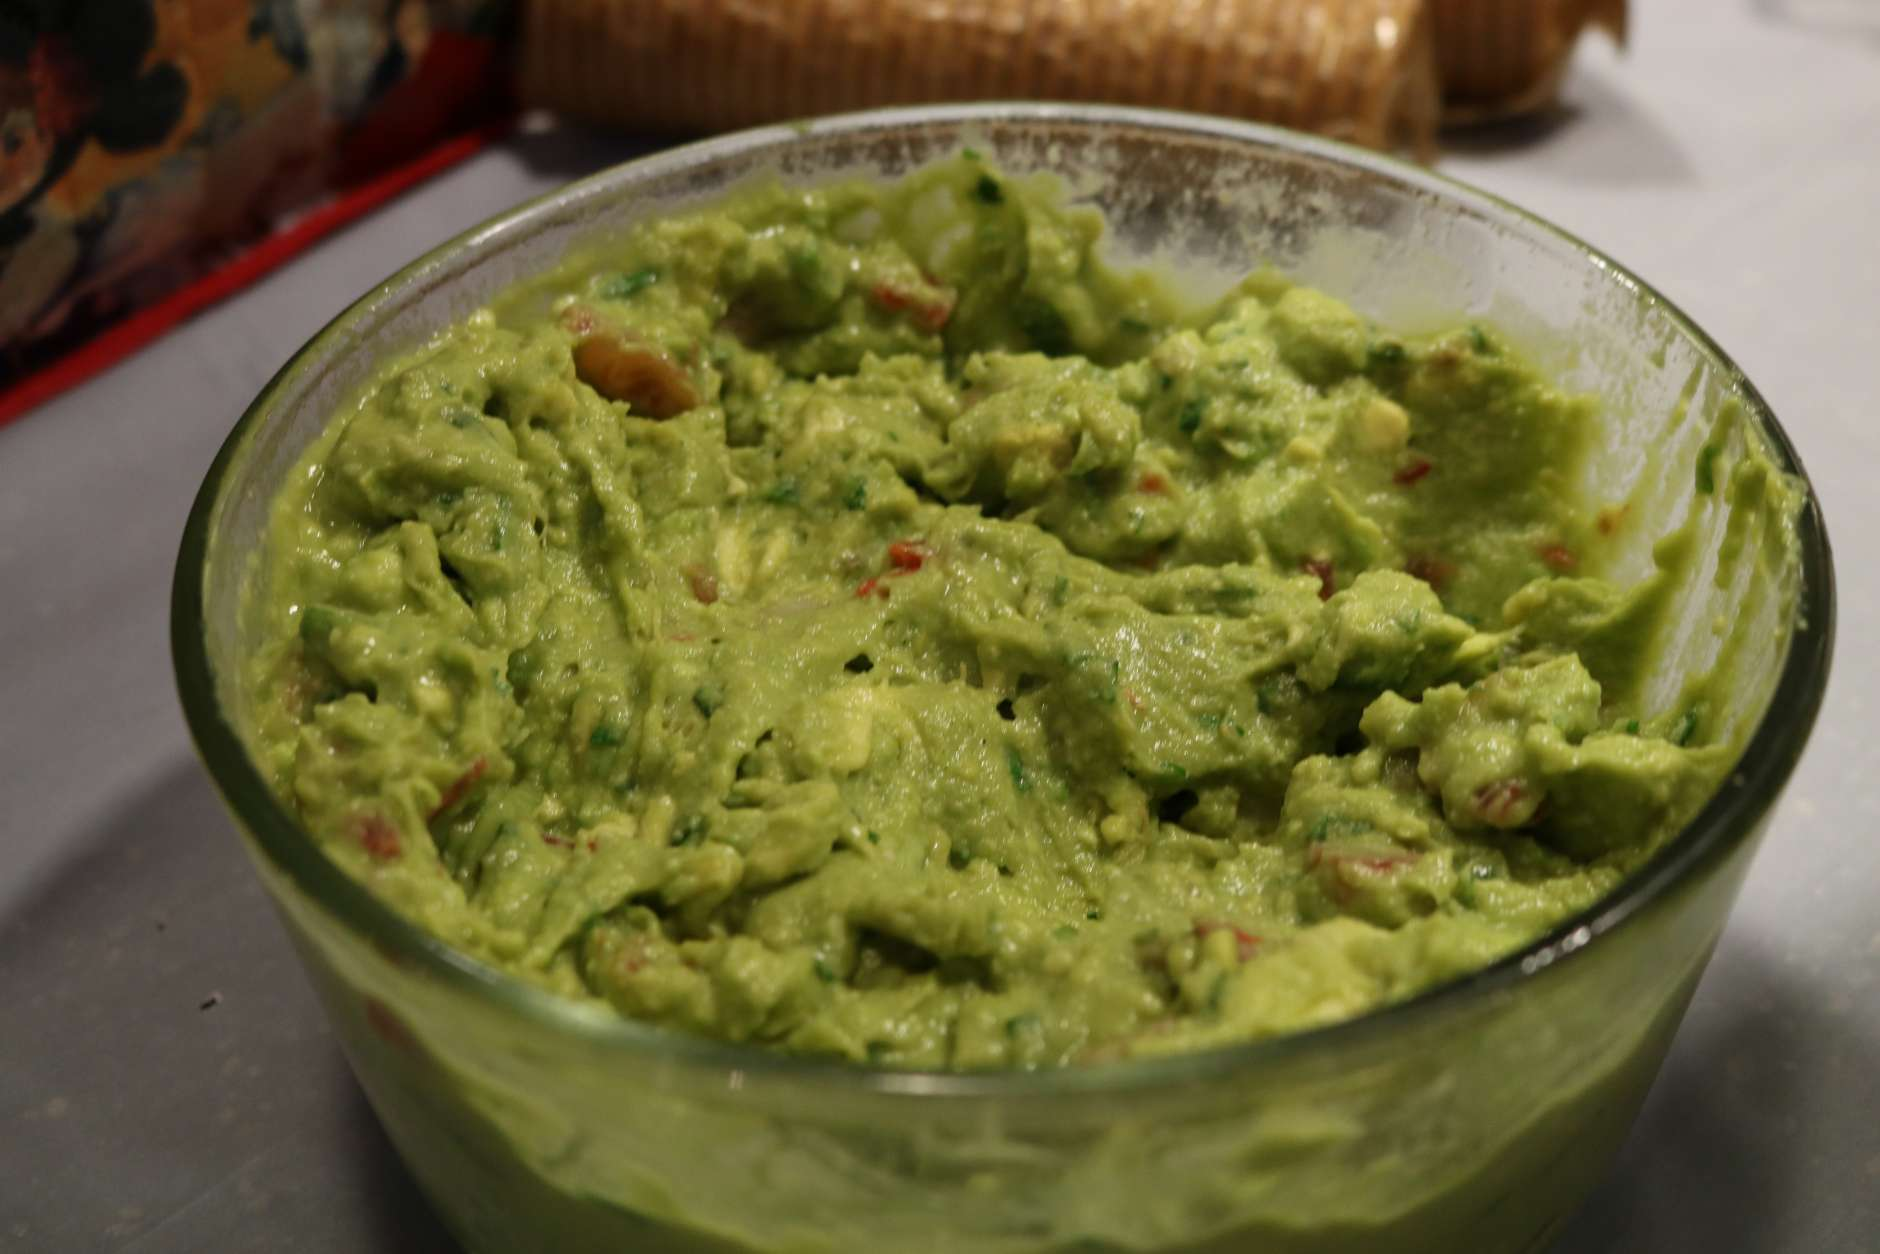 Super Guac for the Super Bowl, courtesy of Mitchell Miller. (WTOP/Hanna Choi)